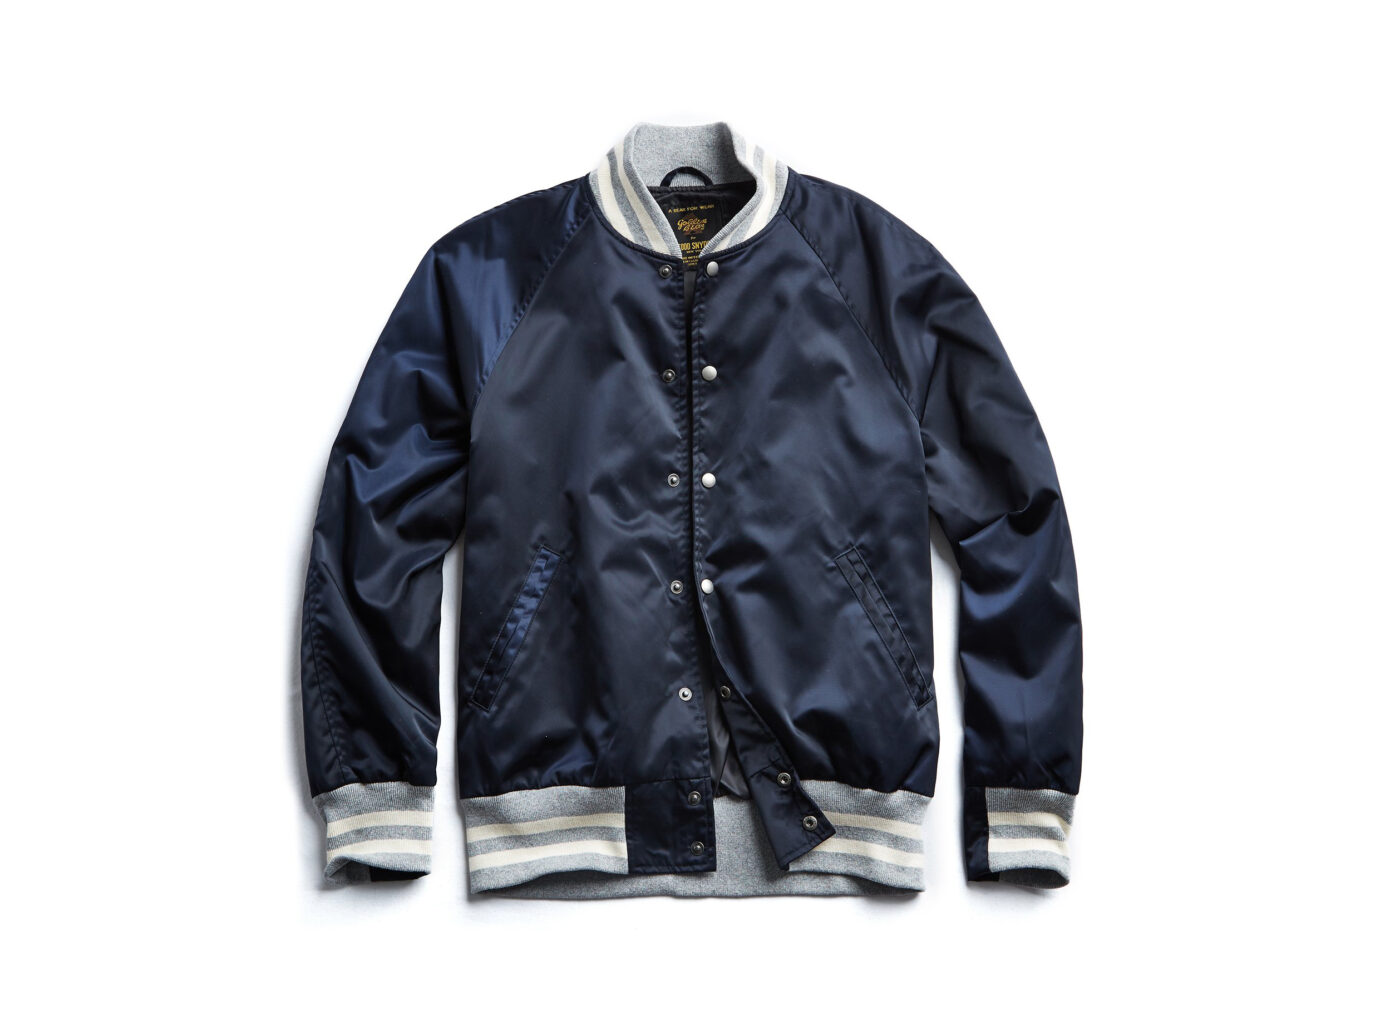 Todd Snyder + Golden Bear Japanese Nylon Snap Bomber Jacket